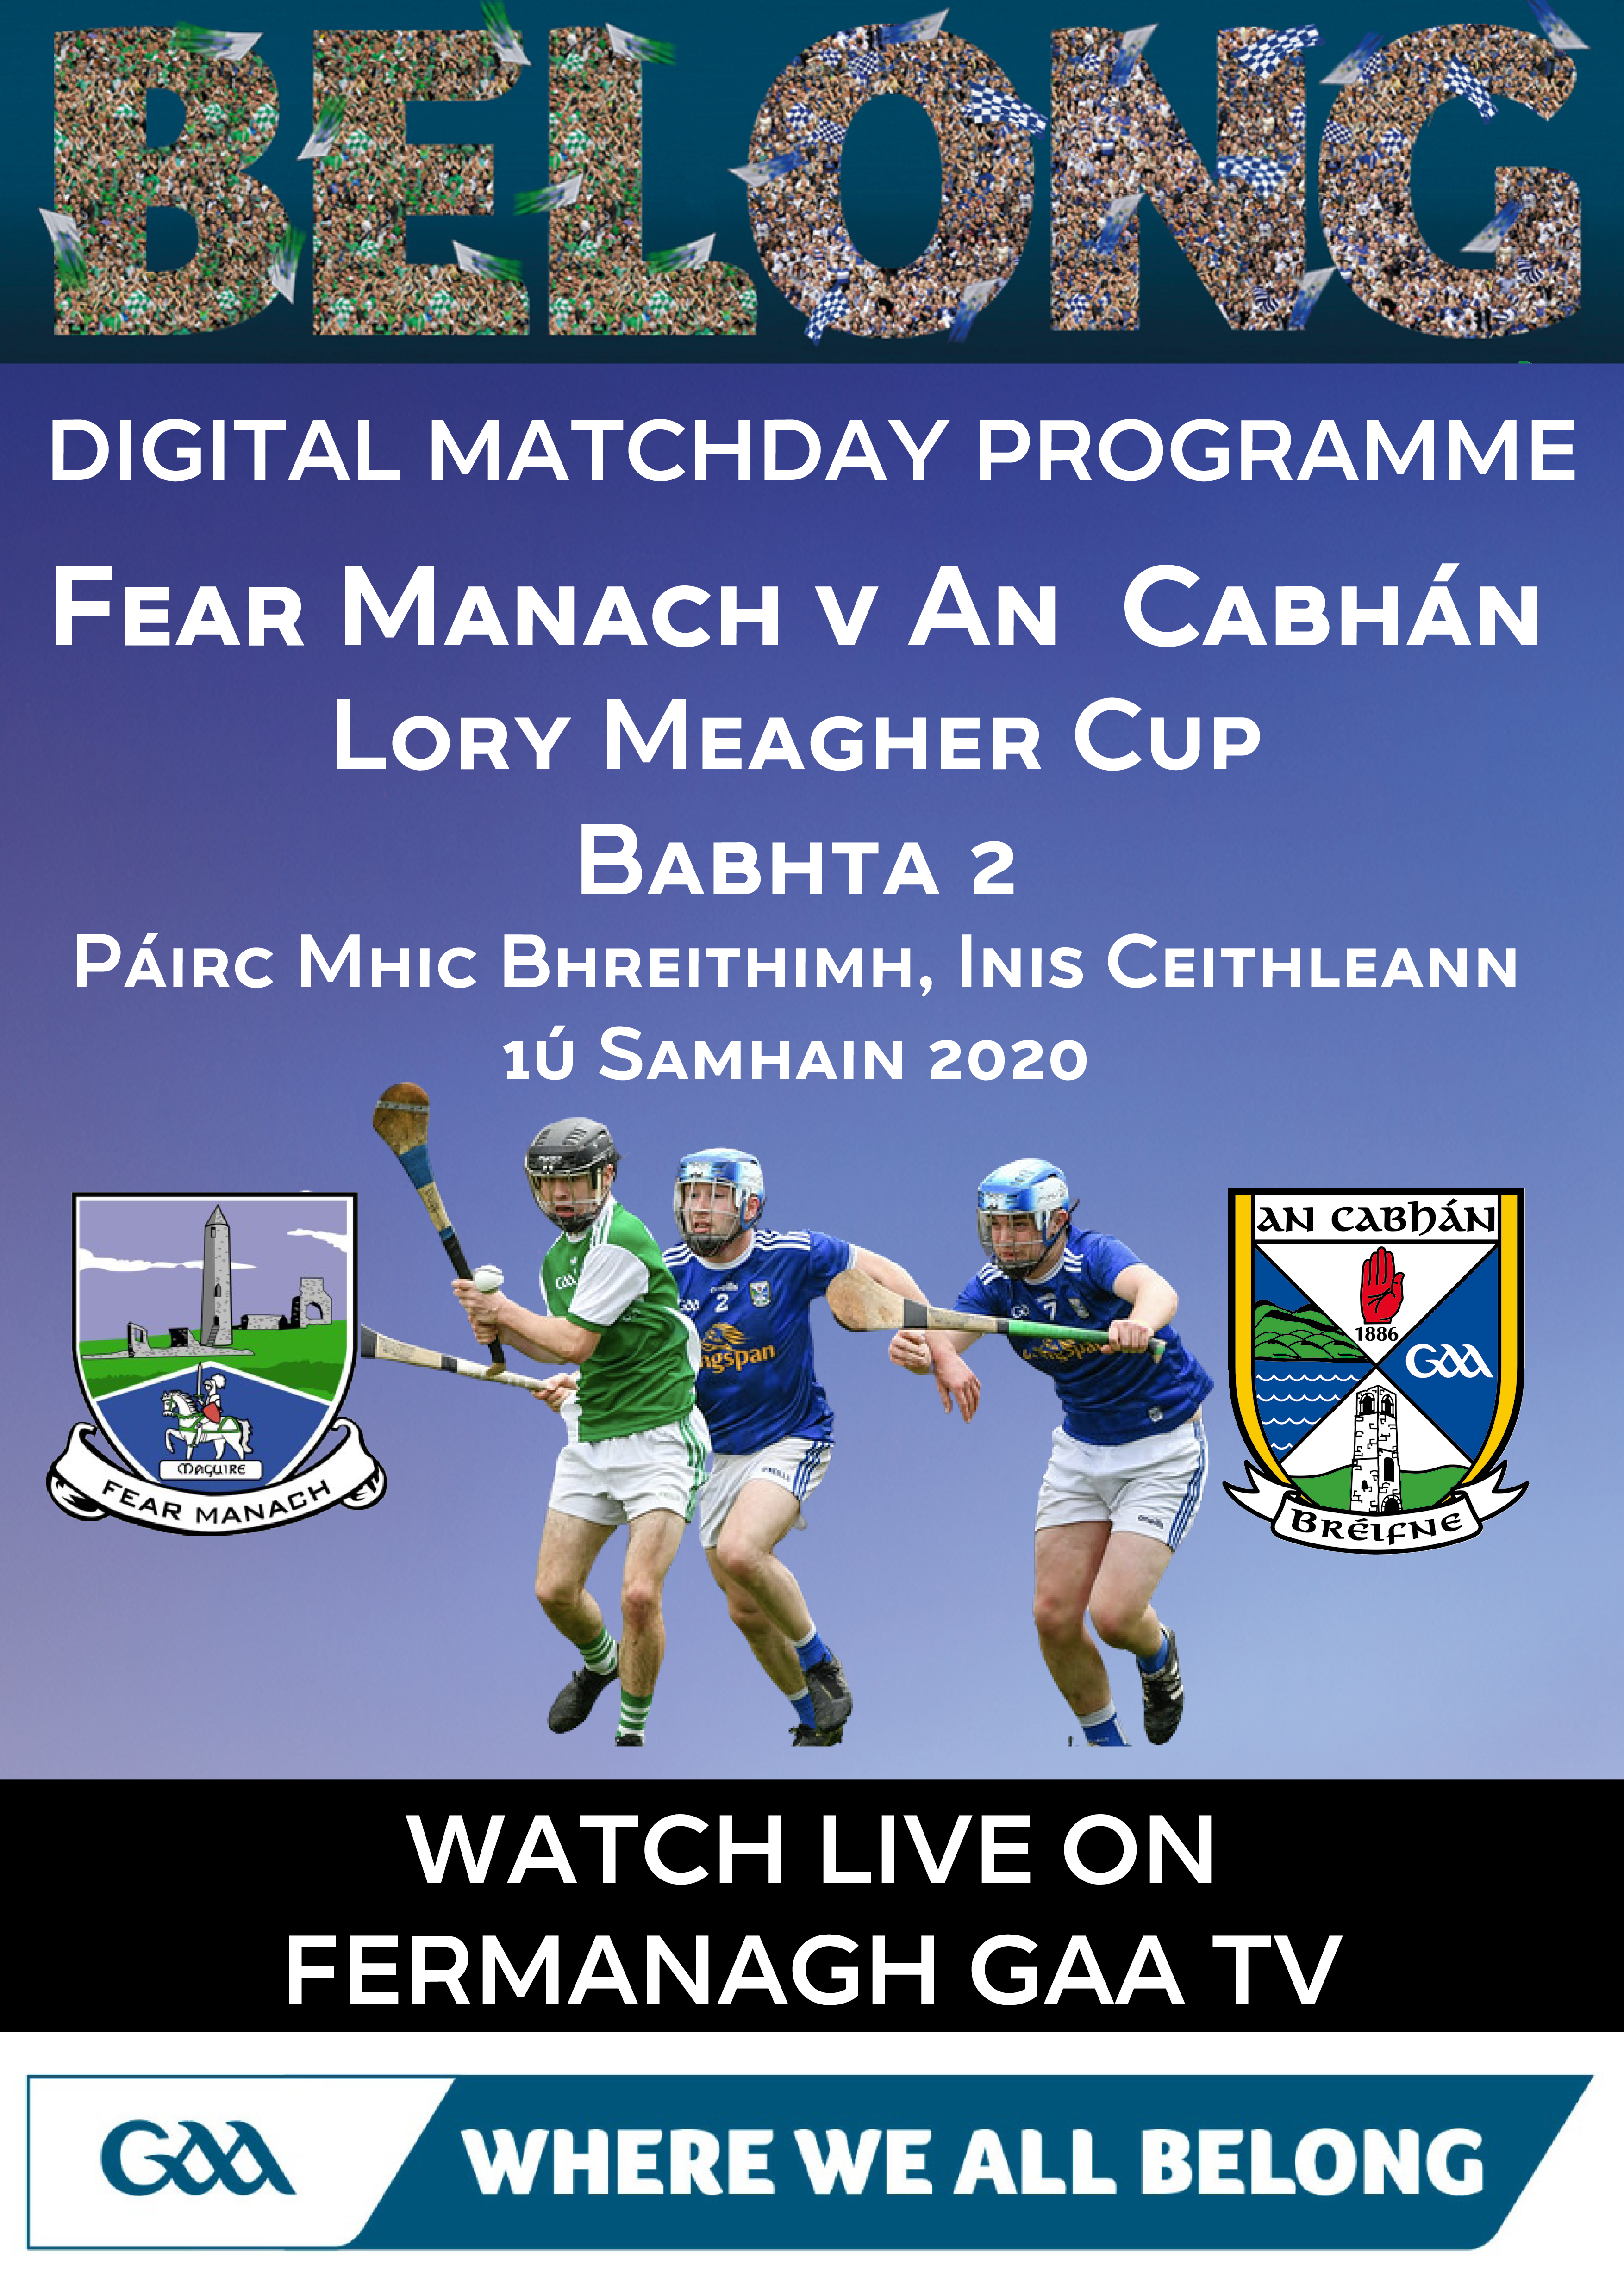 Lory Meagher Cup Round 2 Programme